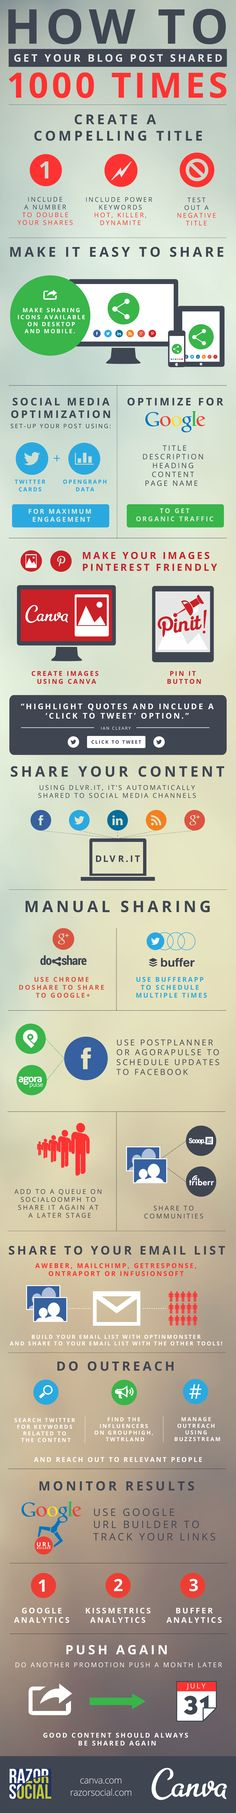 How to get your blog shared 10,000 times #blogging #infographic